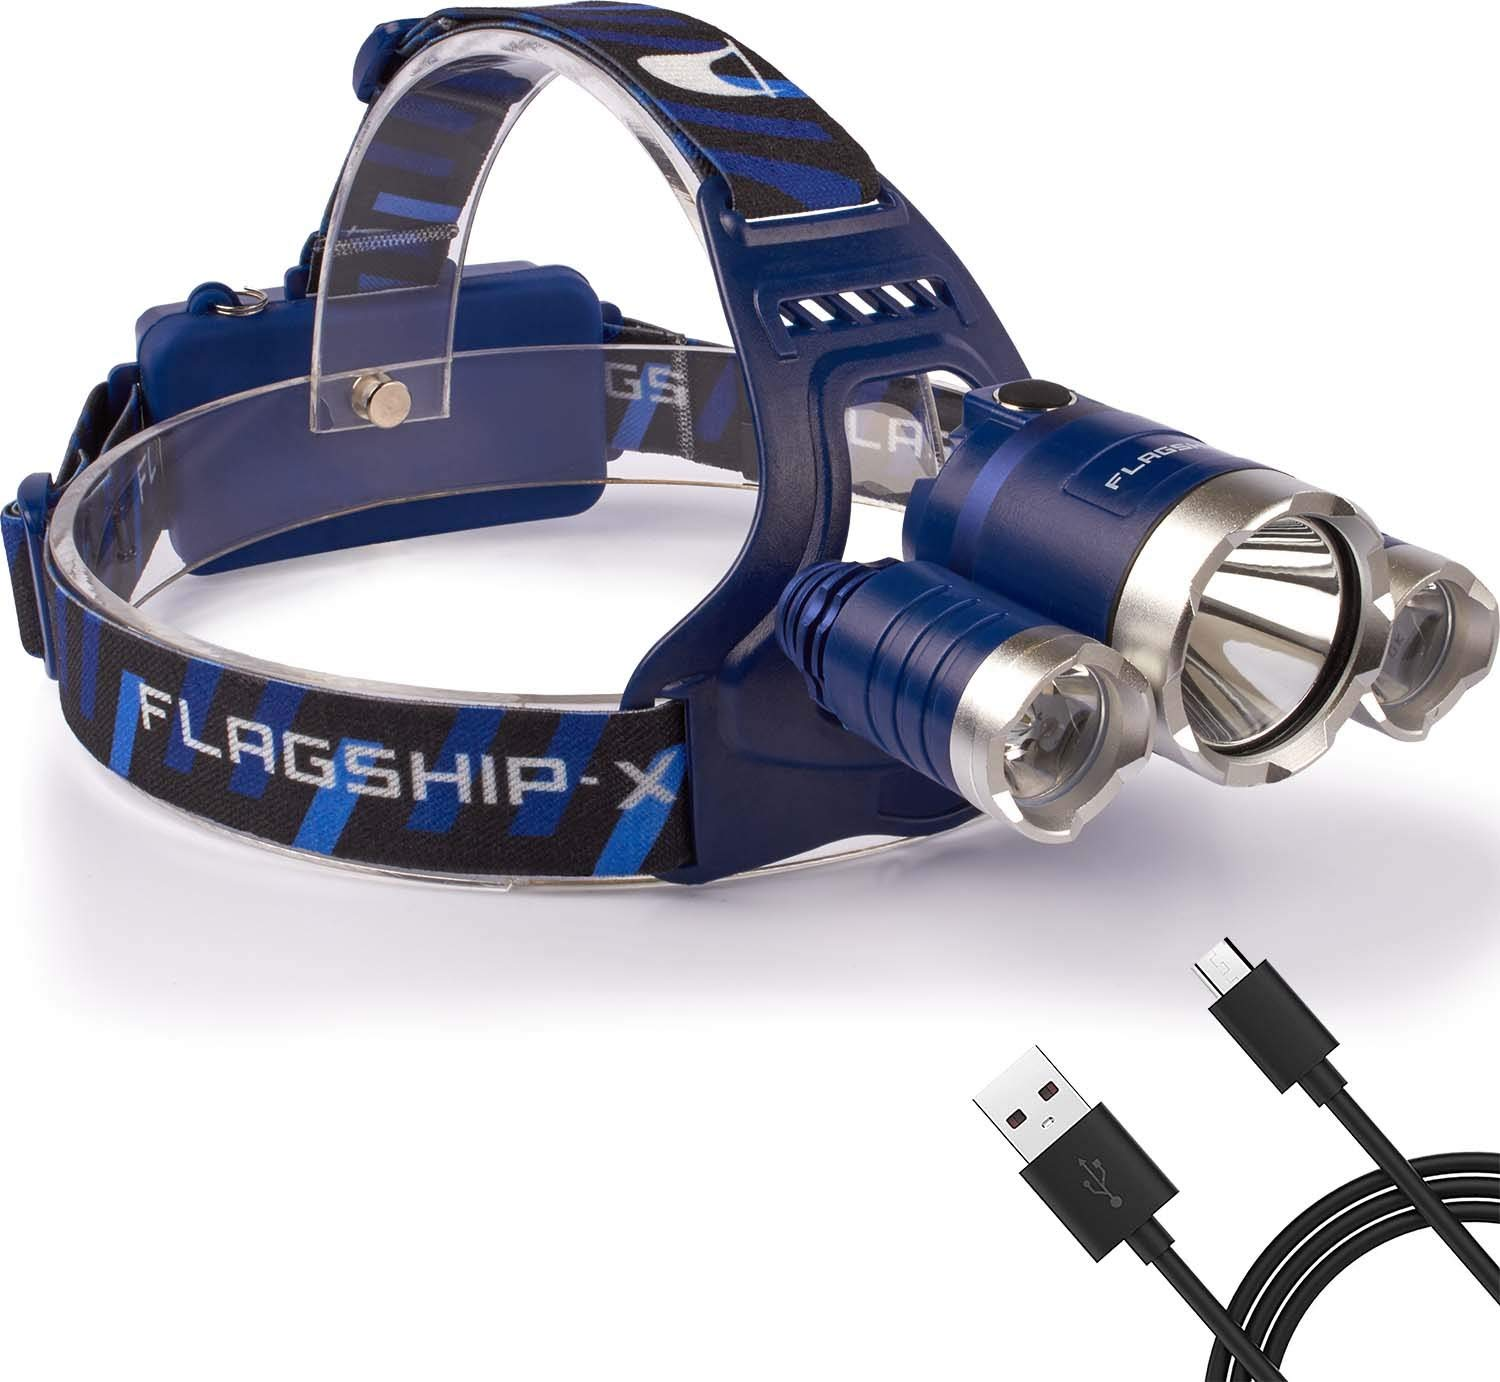 Flagship-X Nighthawk USB Rechargeable Waterproof LED Camping Headlamp Flashlight For Running